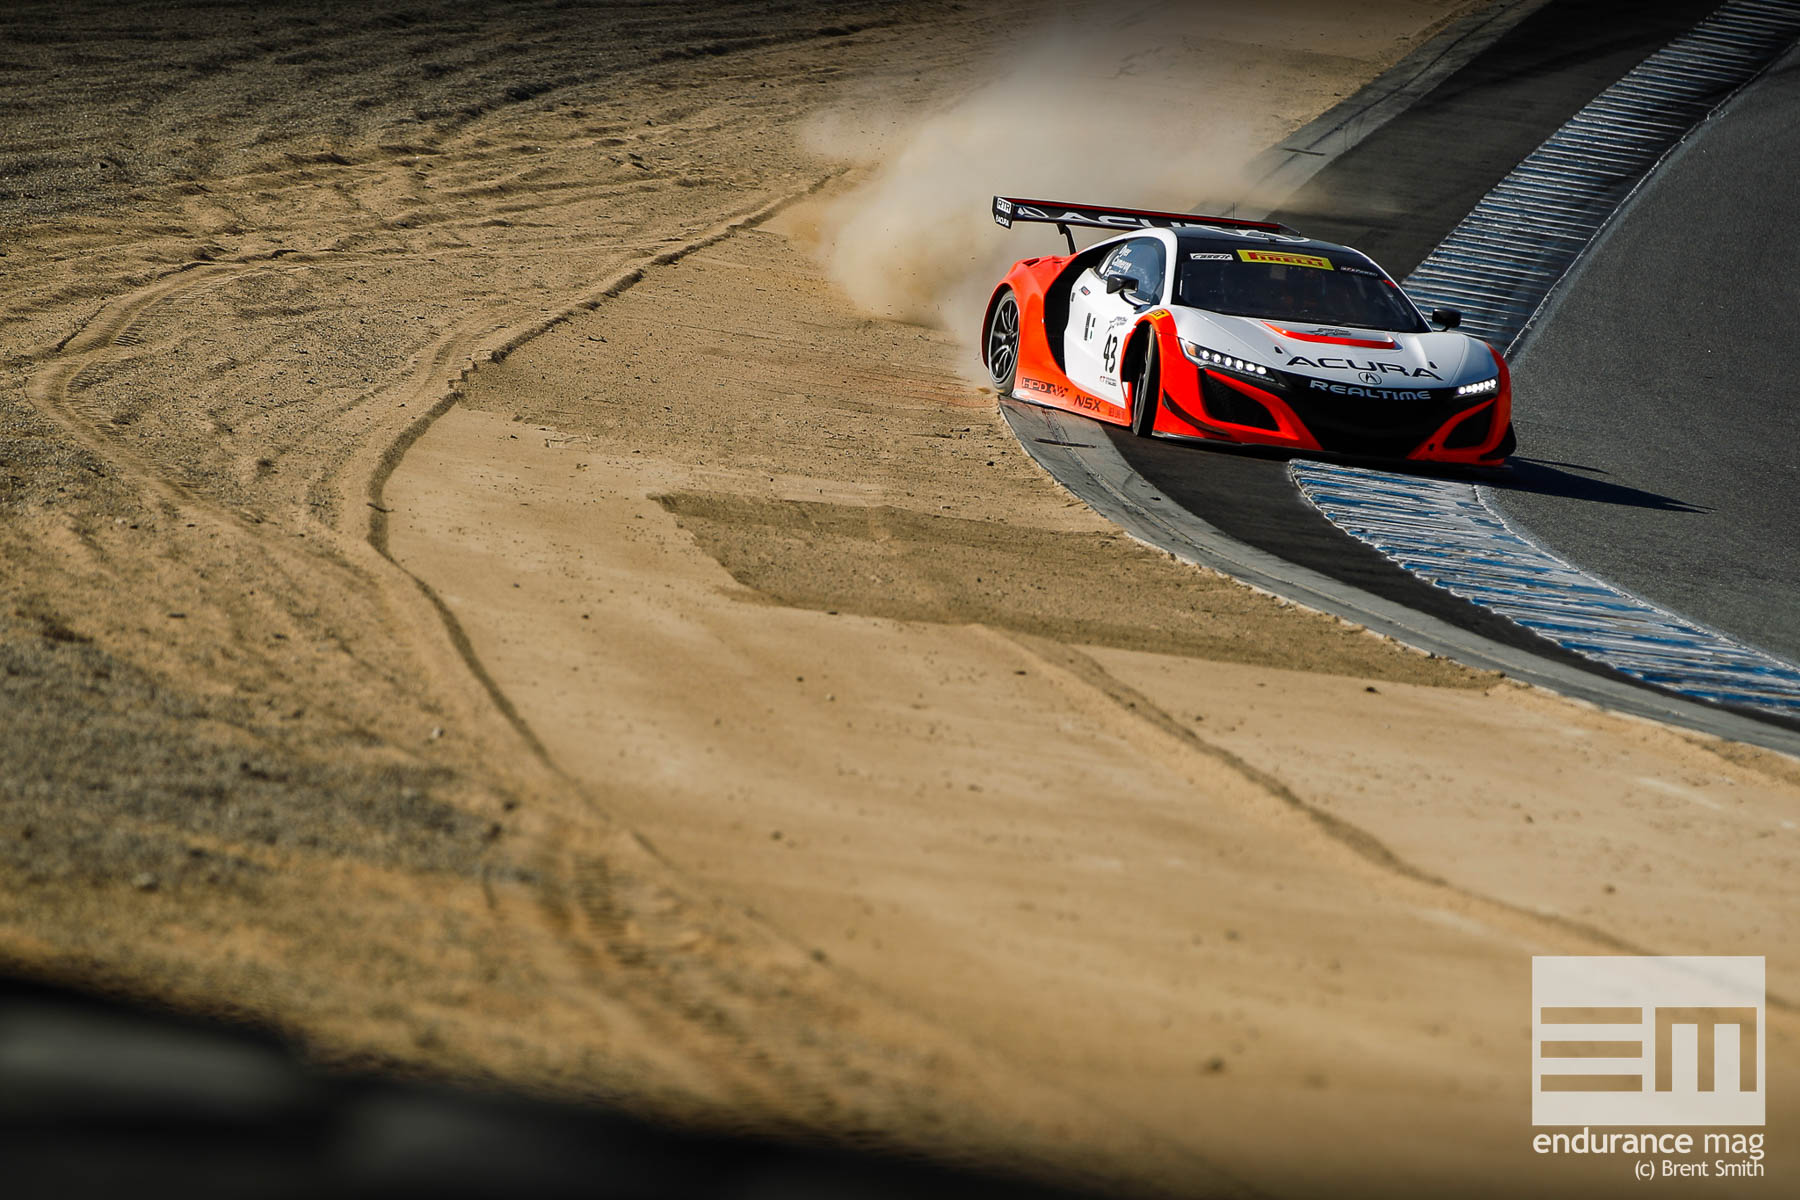 California 8 Hours - Intercontinental GT Challenge - Mazda Raceway Laguna Seca - 43 RealTime Racing, Ryan Eversley, Tom Dyer, Dane Cameron, Acura NSX GT3